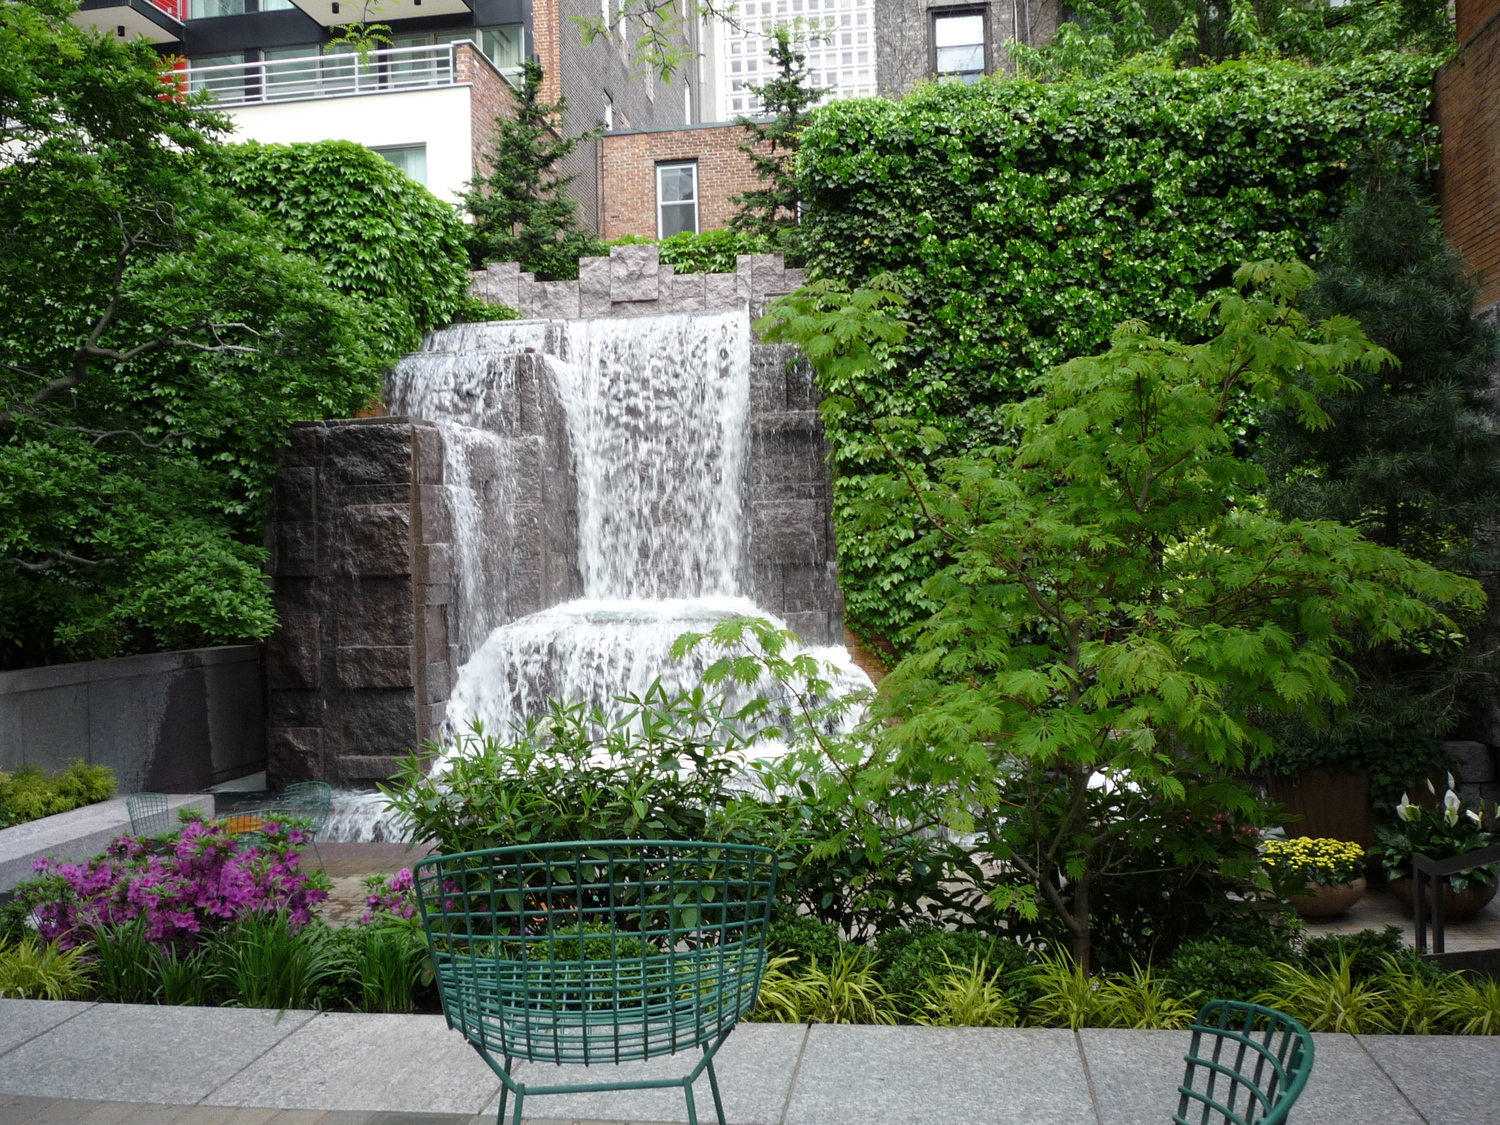 Greenacre Park | on E. 51st between 2nd and 3rd Avenues